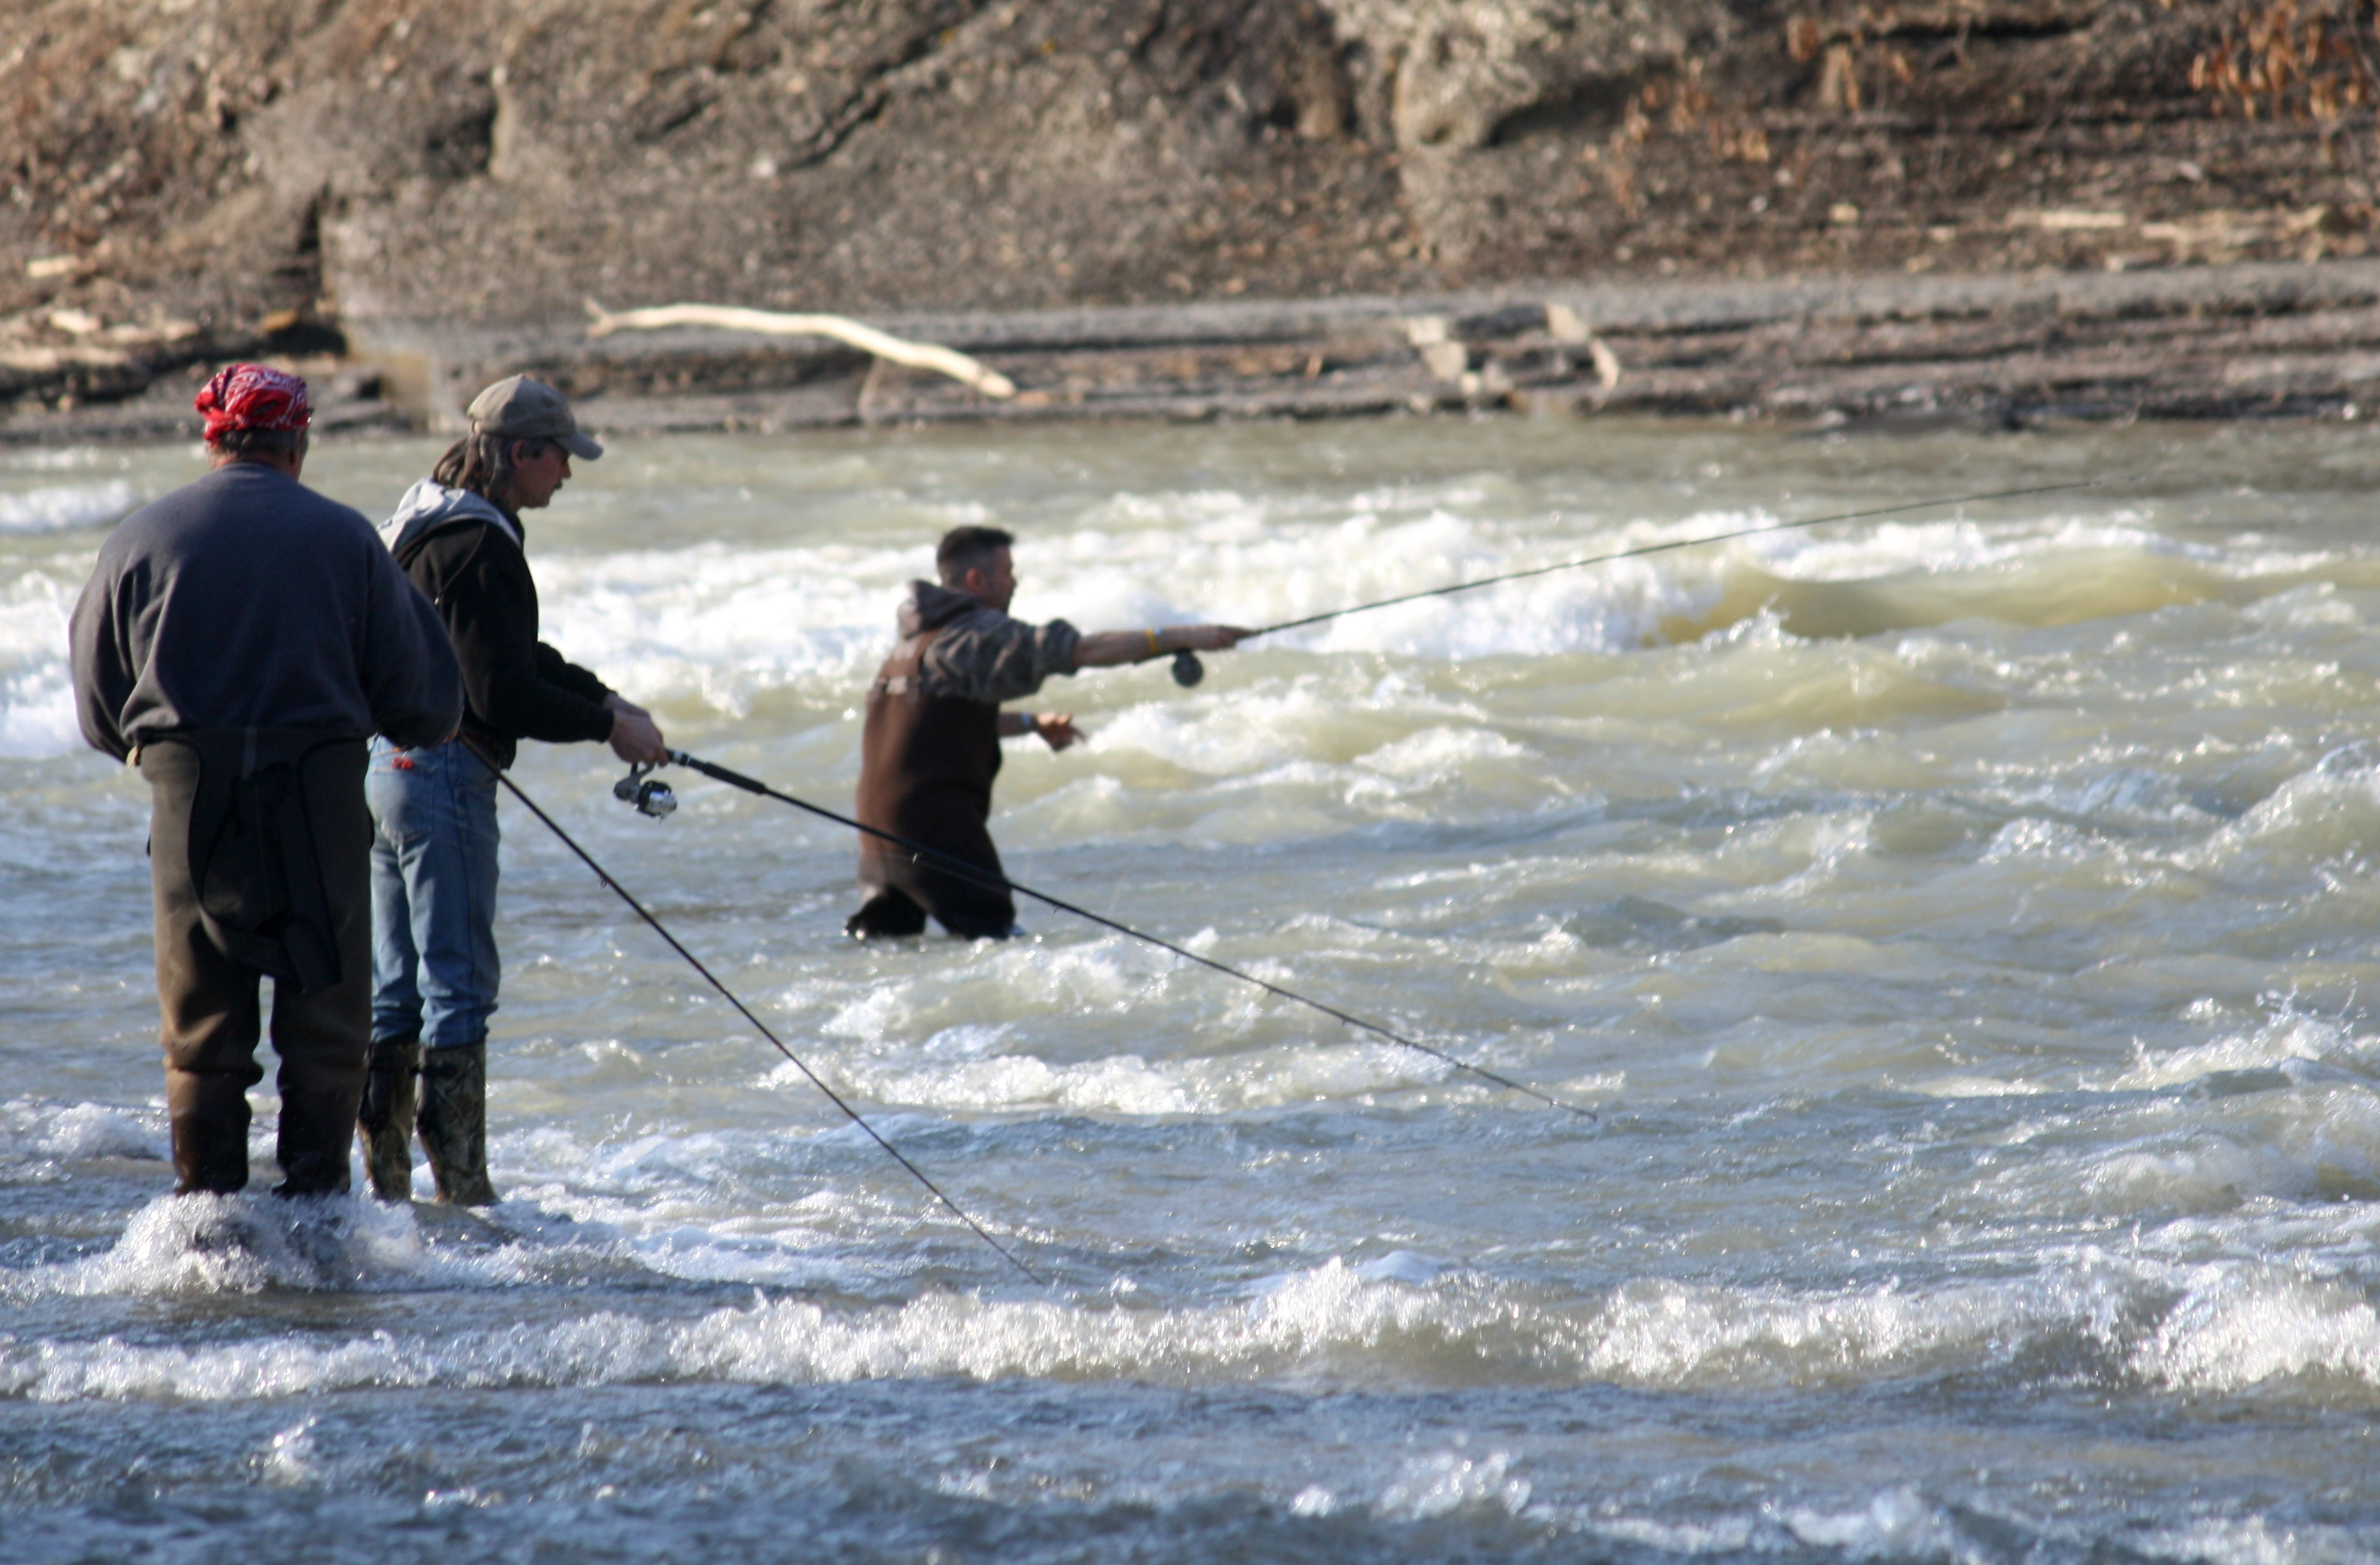 Fishing | Enchanted Mountains of Cattaraugus County, New York